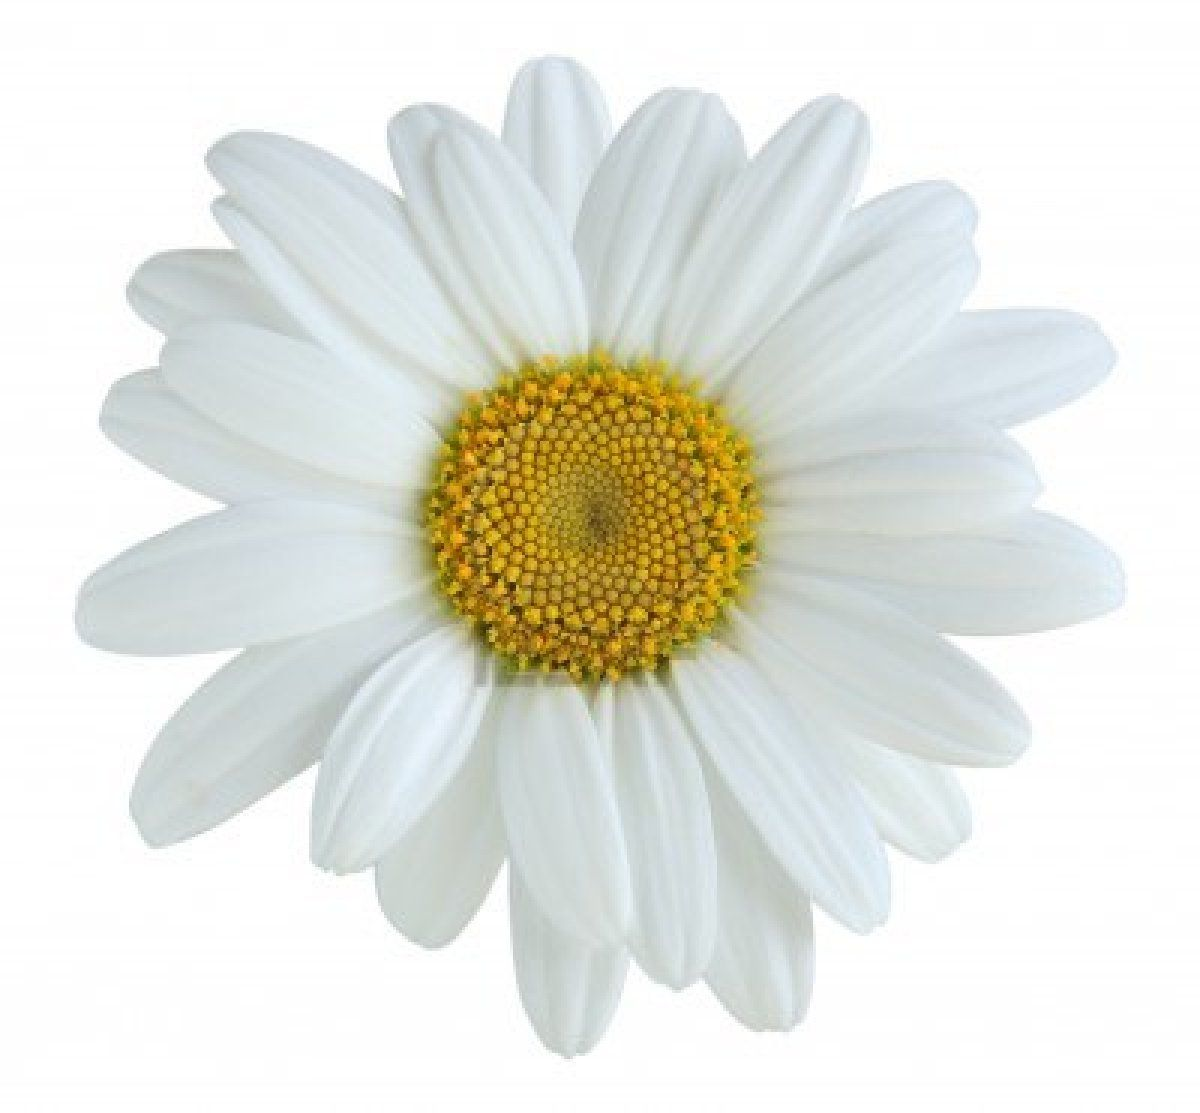 White daisy flower daisy flowers pictures daisy flowers history flower izmirmasajfo Gallery